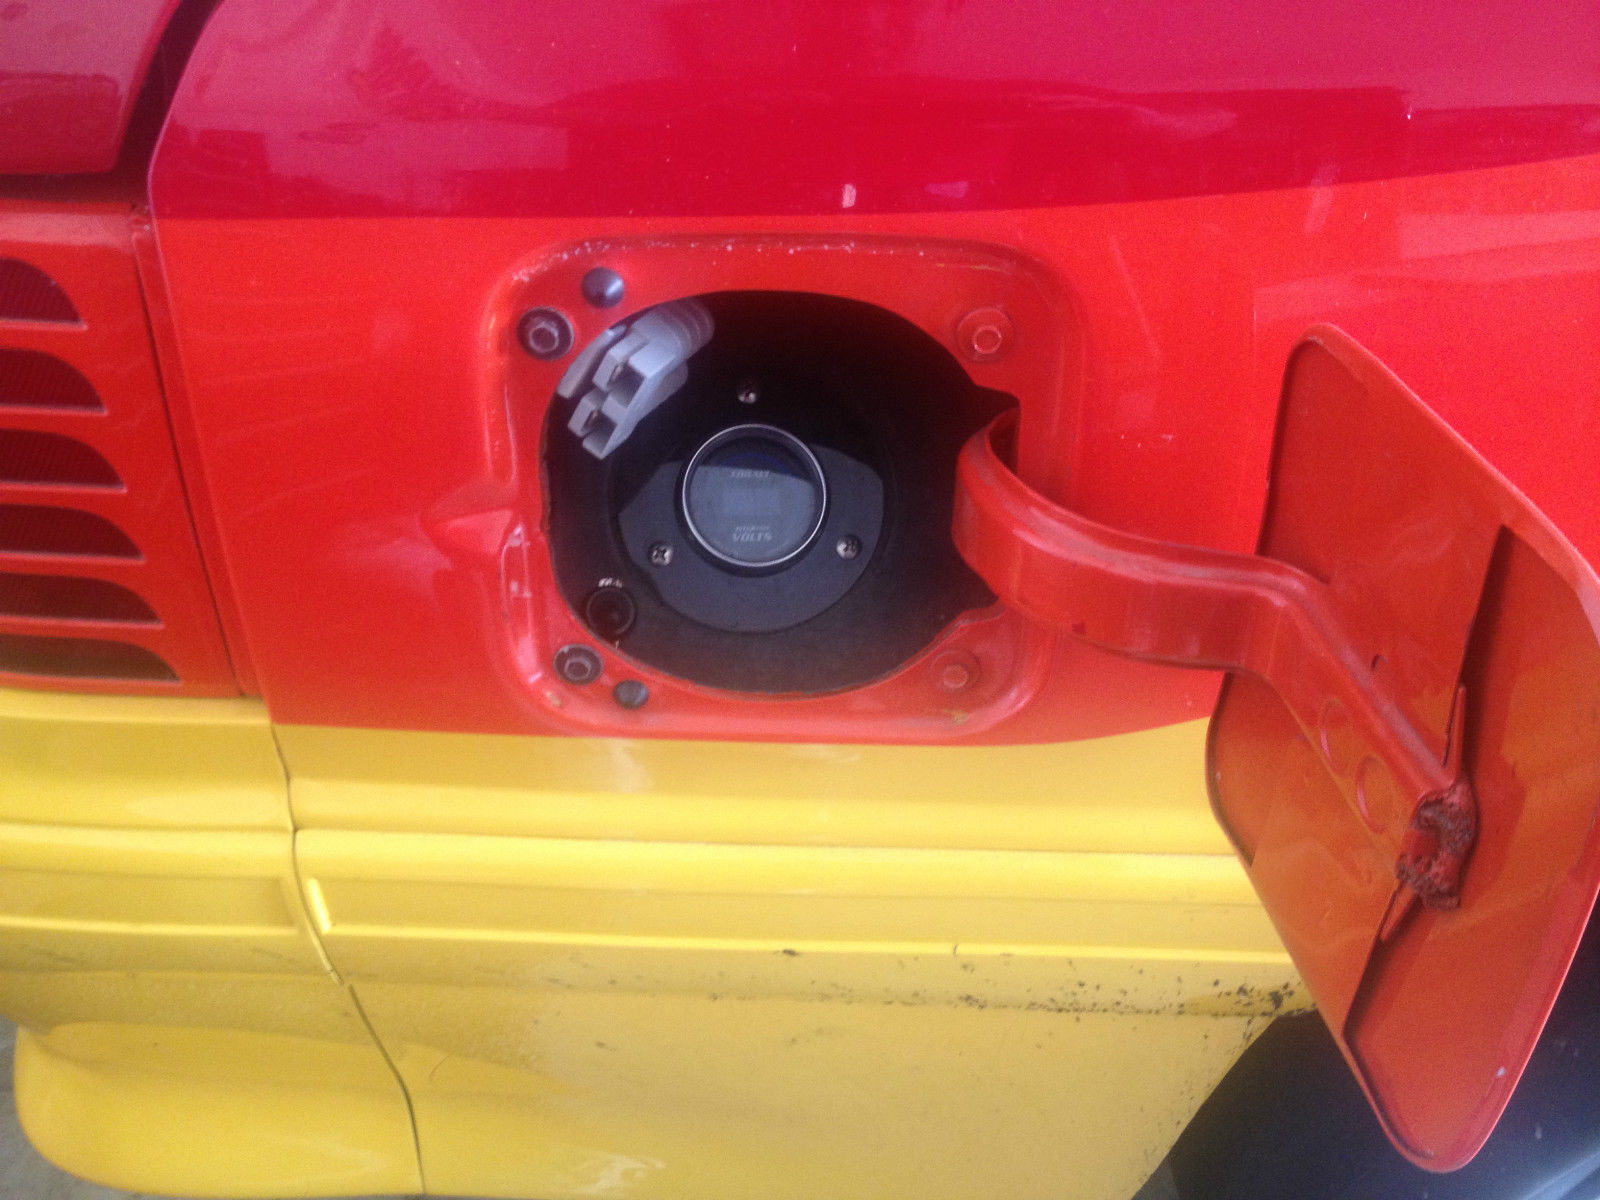 1990-ford-mustang-gt-drag-roller-7  Mustang Fuel Filter Location on 88 mustang starter location, 88 mustang no heat, 88 mustang fuel pump, 88 mustang rough idle, 88 mustang alternator, 88 mustang egr valve, 88 mustang fuel pressure regulator, 88 mustang exhaust, 88 mustang ignition relay location, 88 mustang water pump, 88 mustang maf, 88 mustang differential,